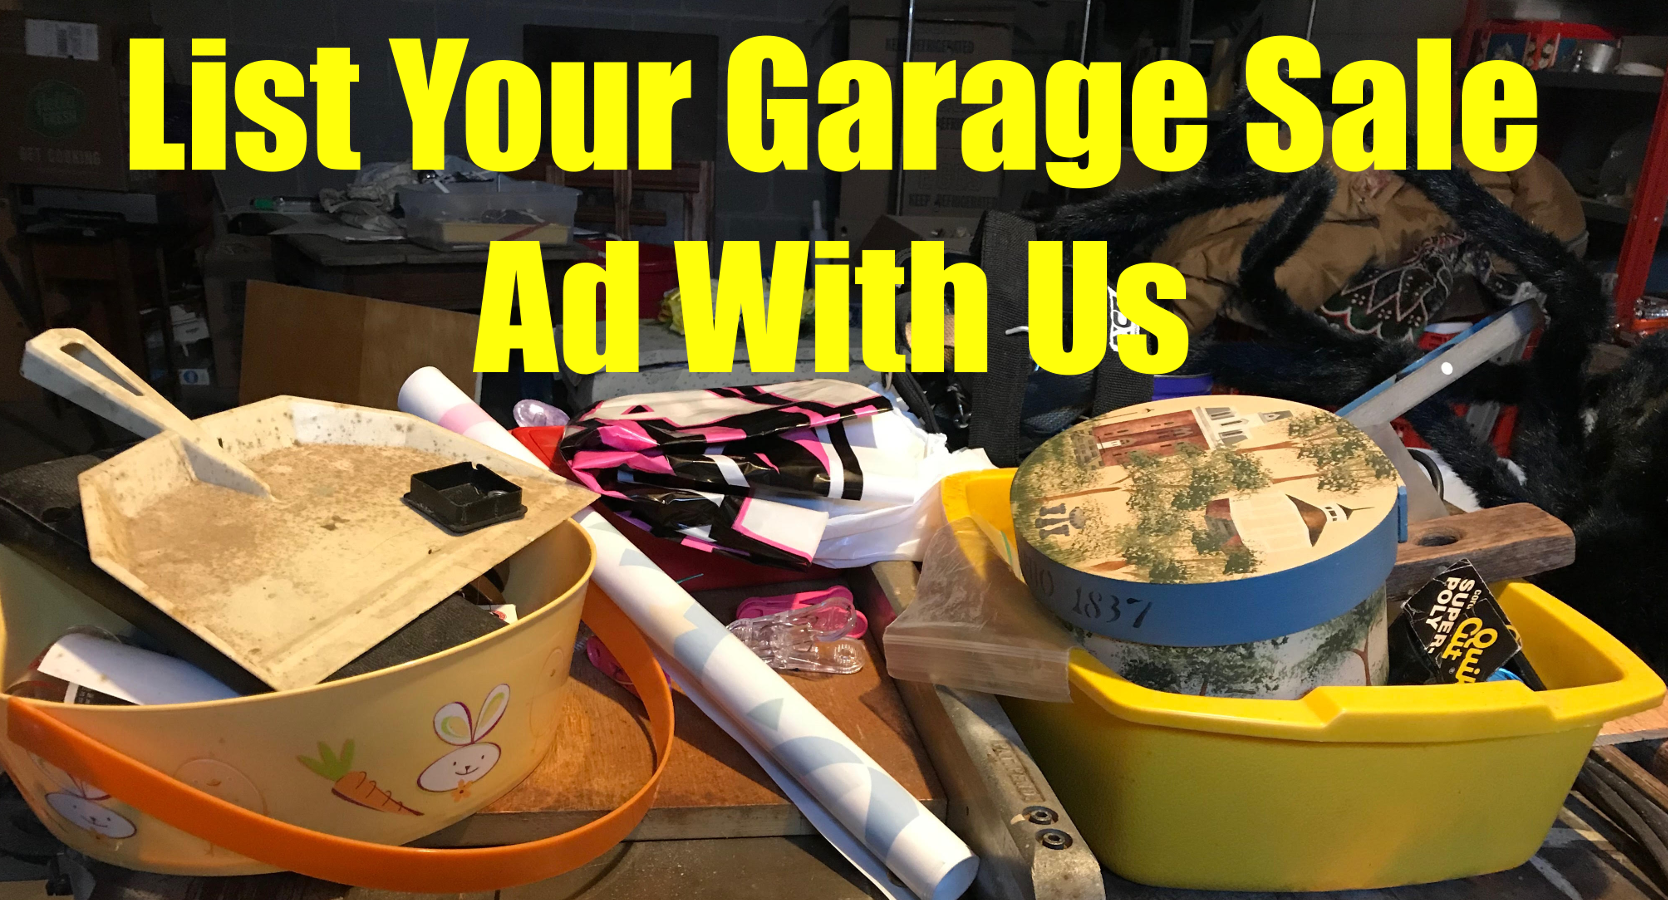 NEW! List Your Garage/Moving Sale Ad With Us